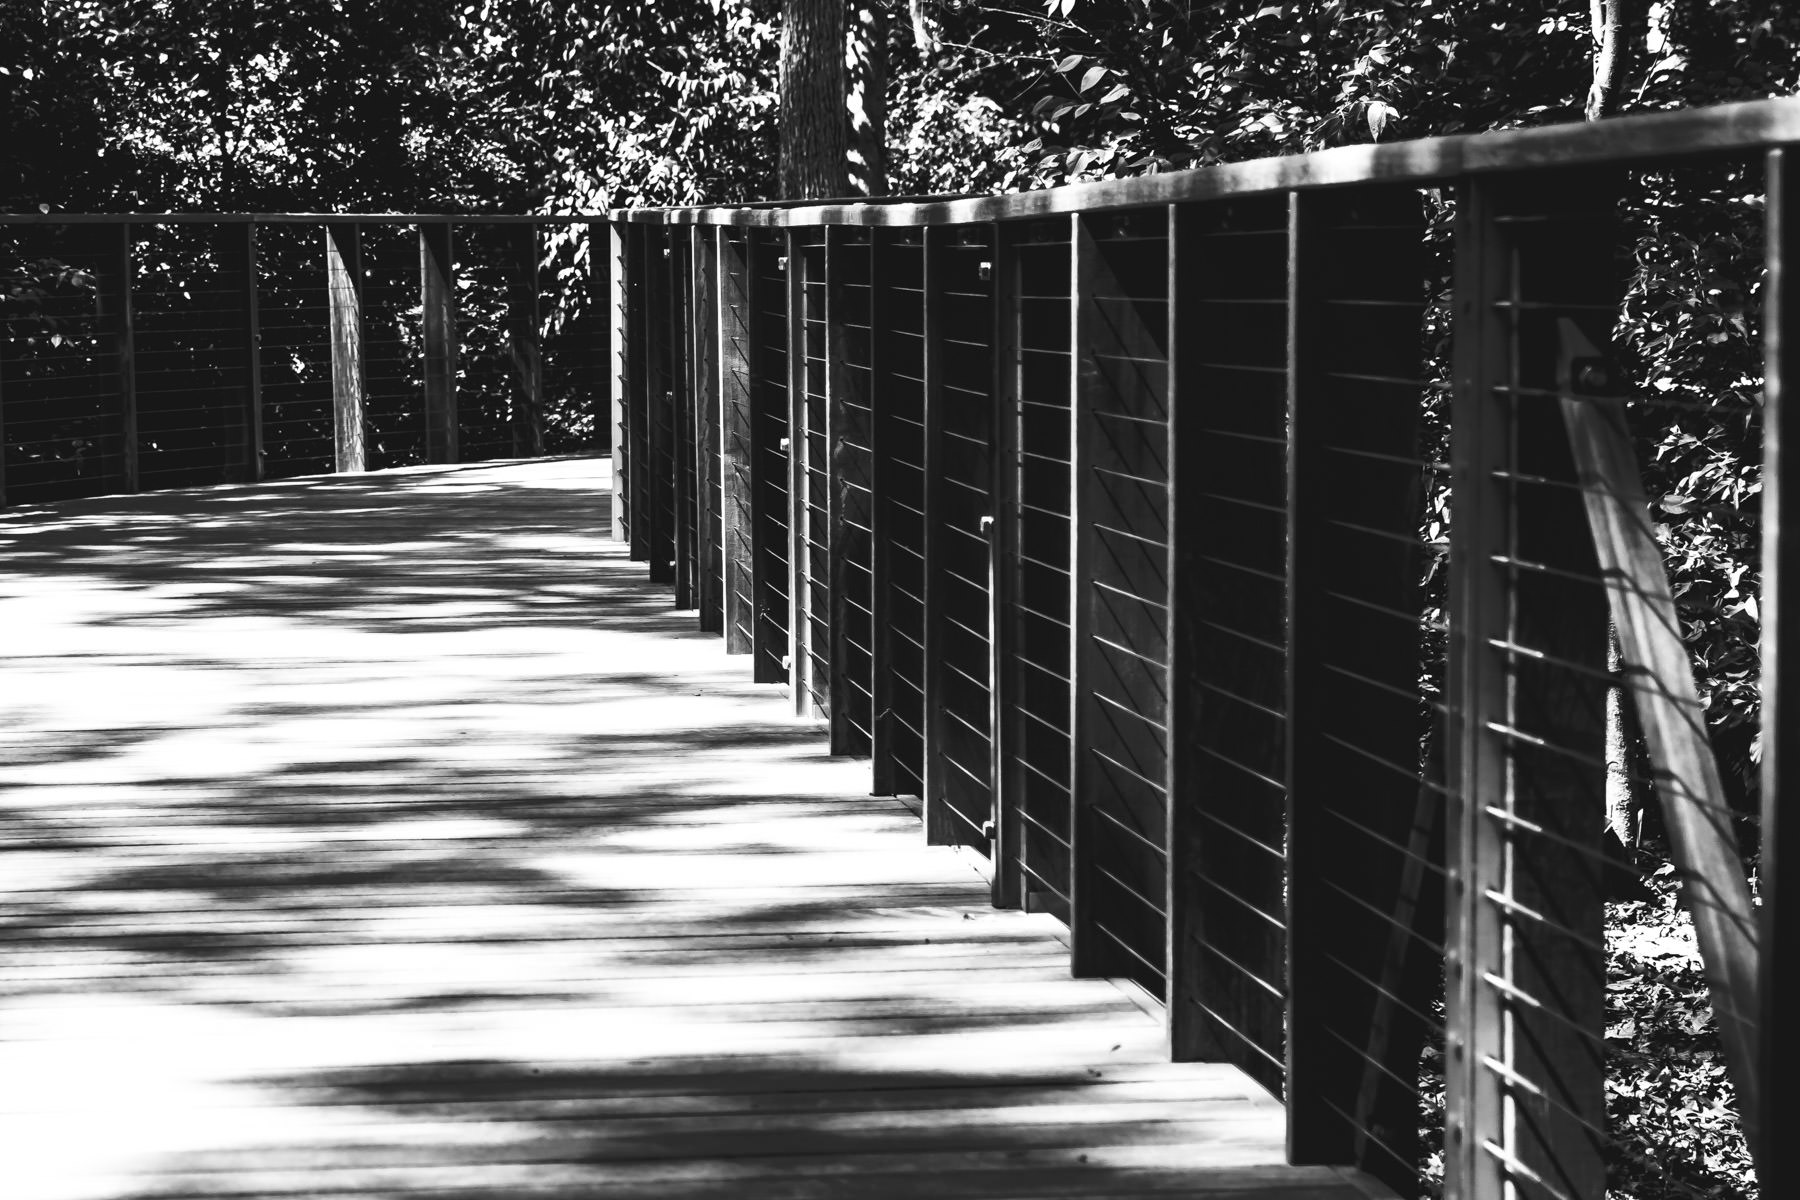 A pedestrian bridge winds through the trees at the Fort Worth Botanic Garden.